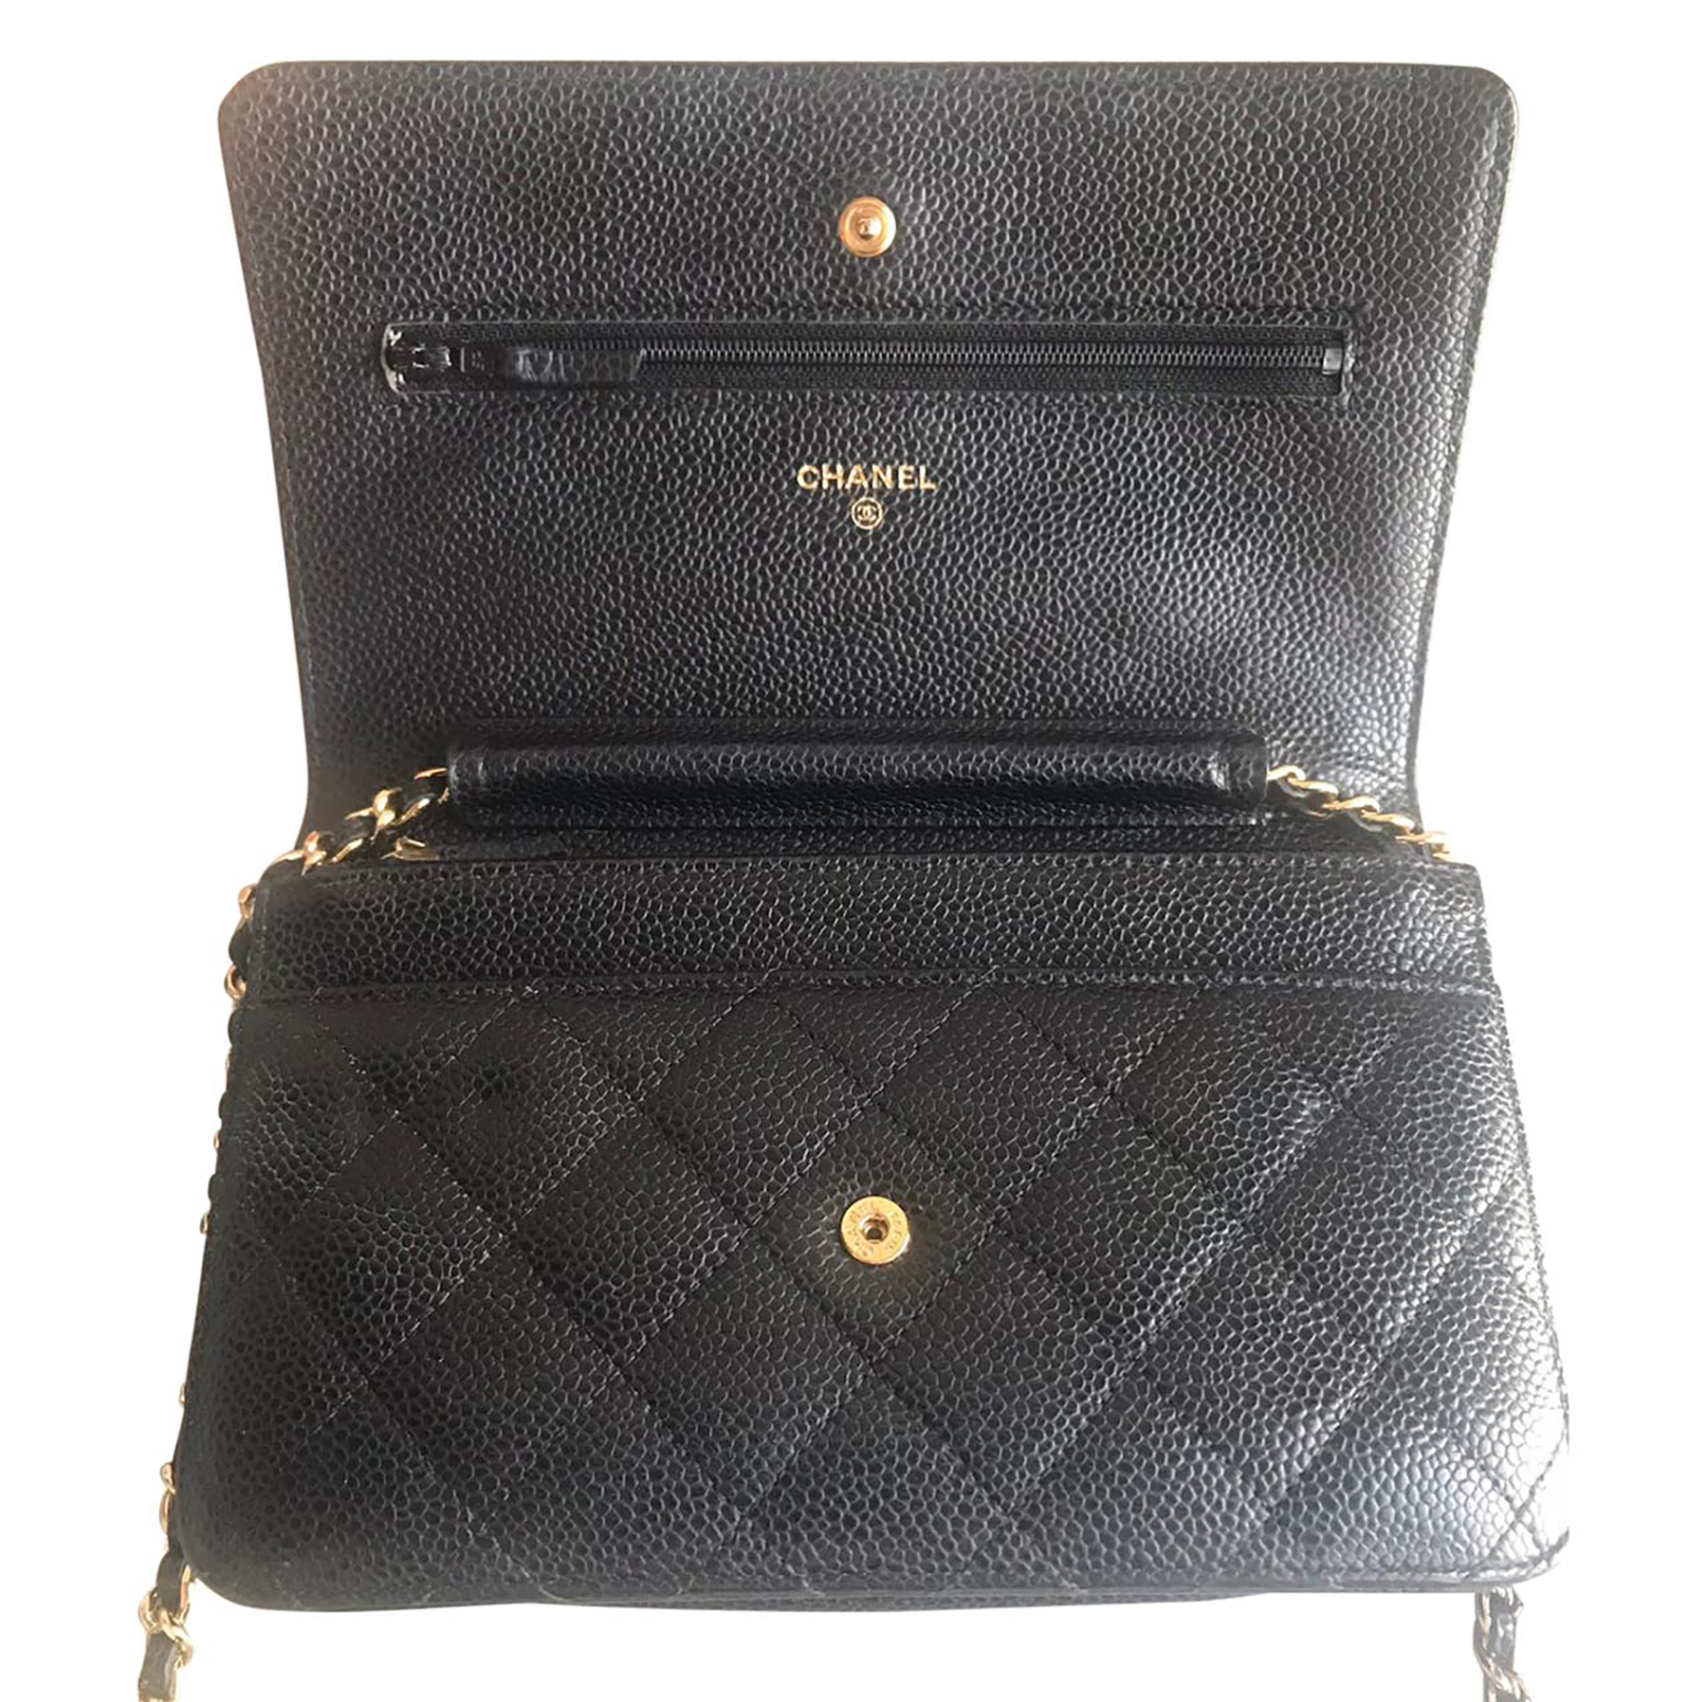 Chanel Caviar Wallet On Chain